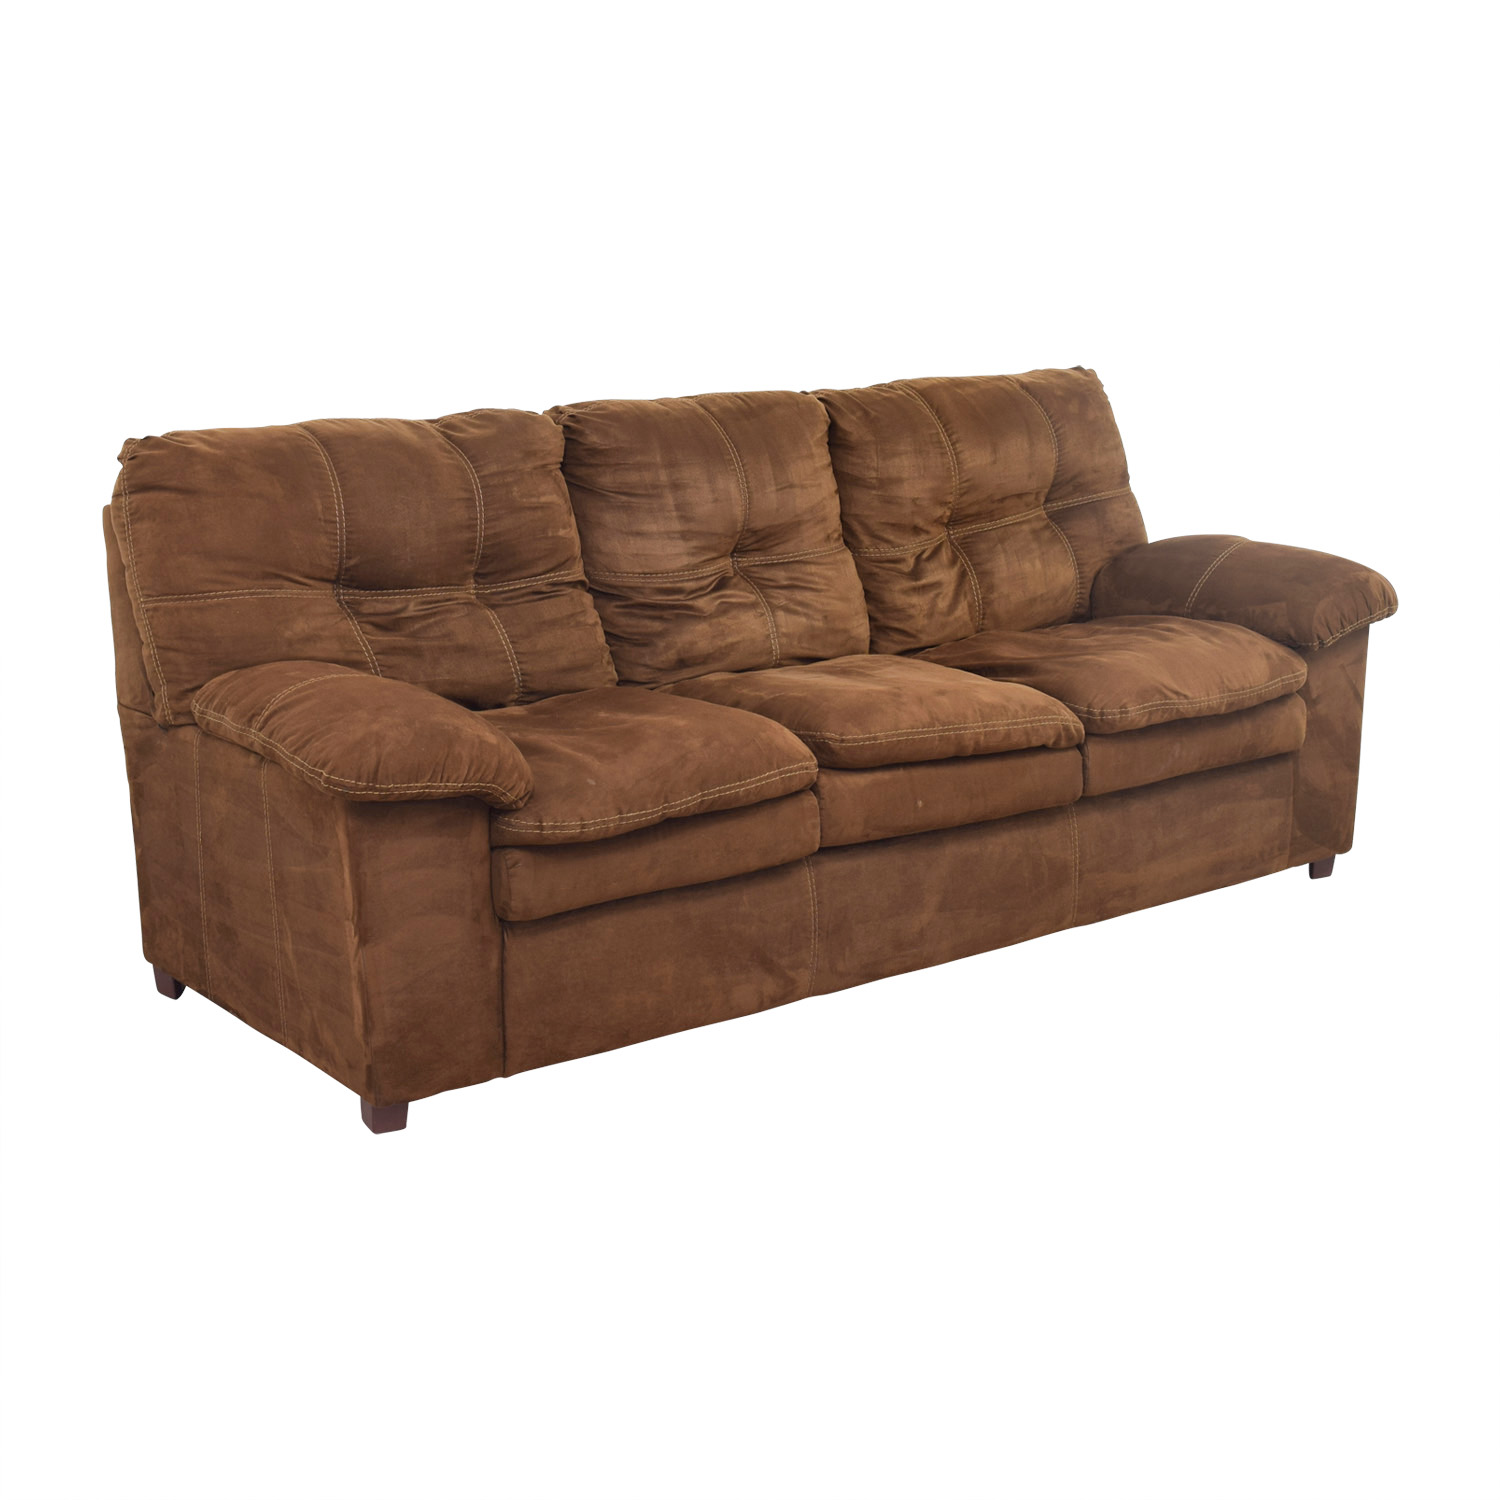 Brown Three-Cushion Pillowed Arms Sofa